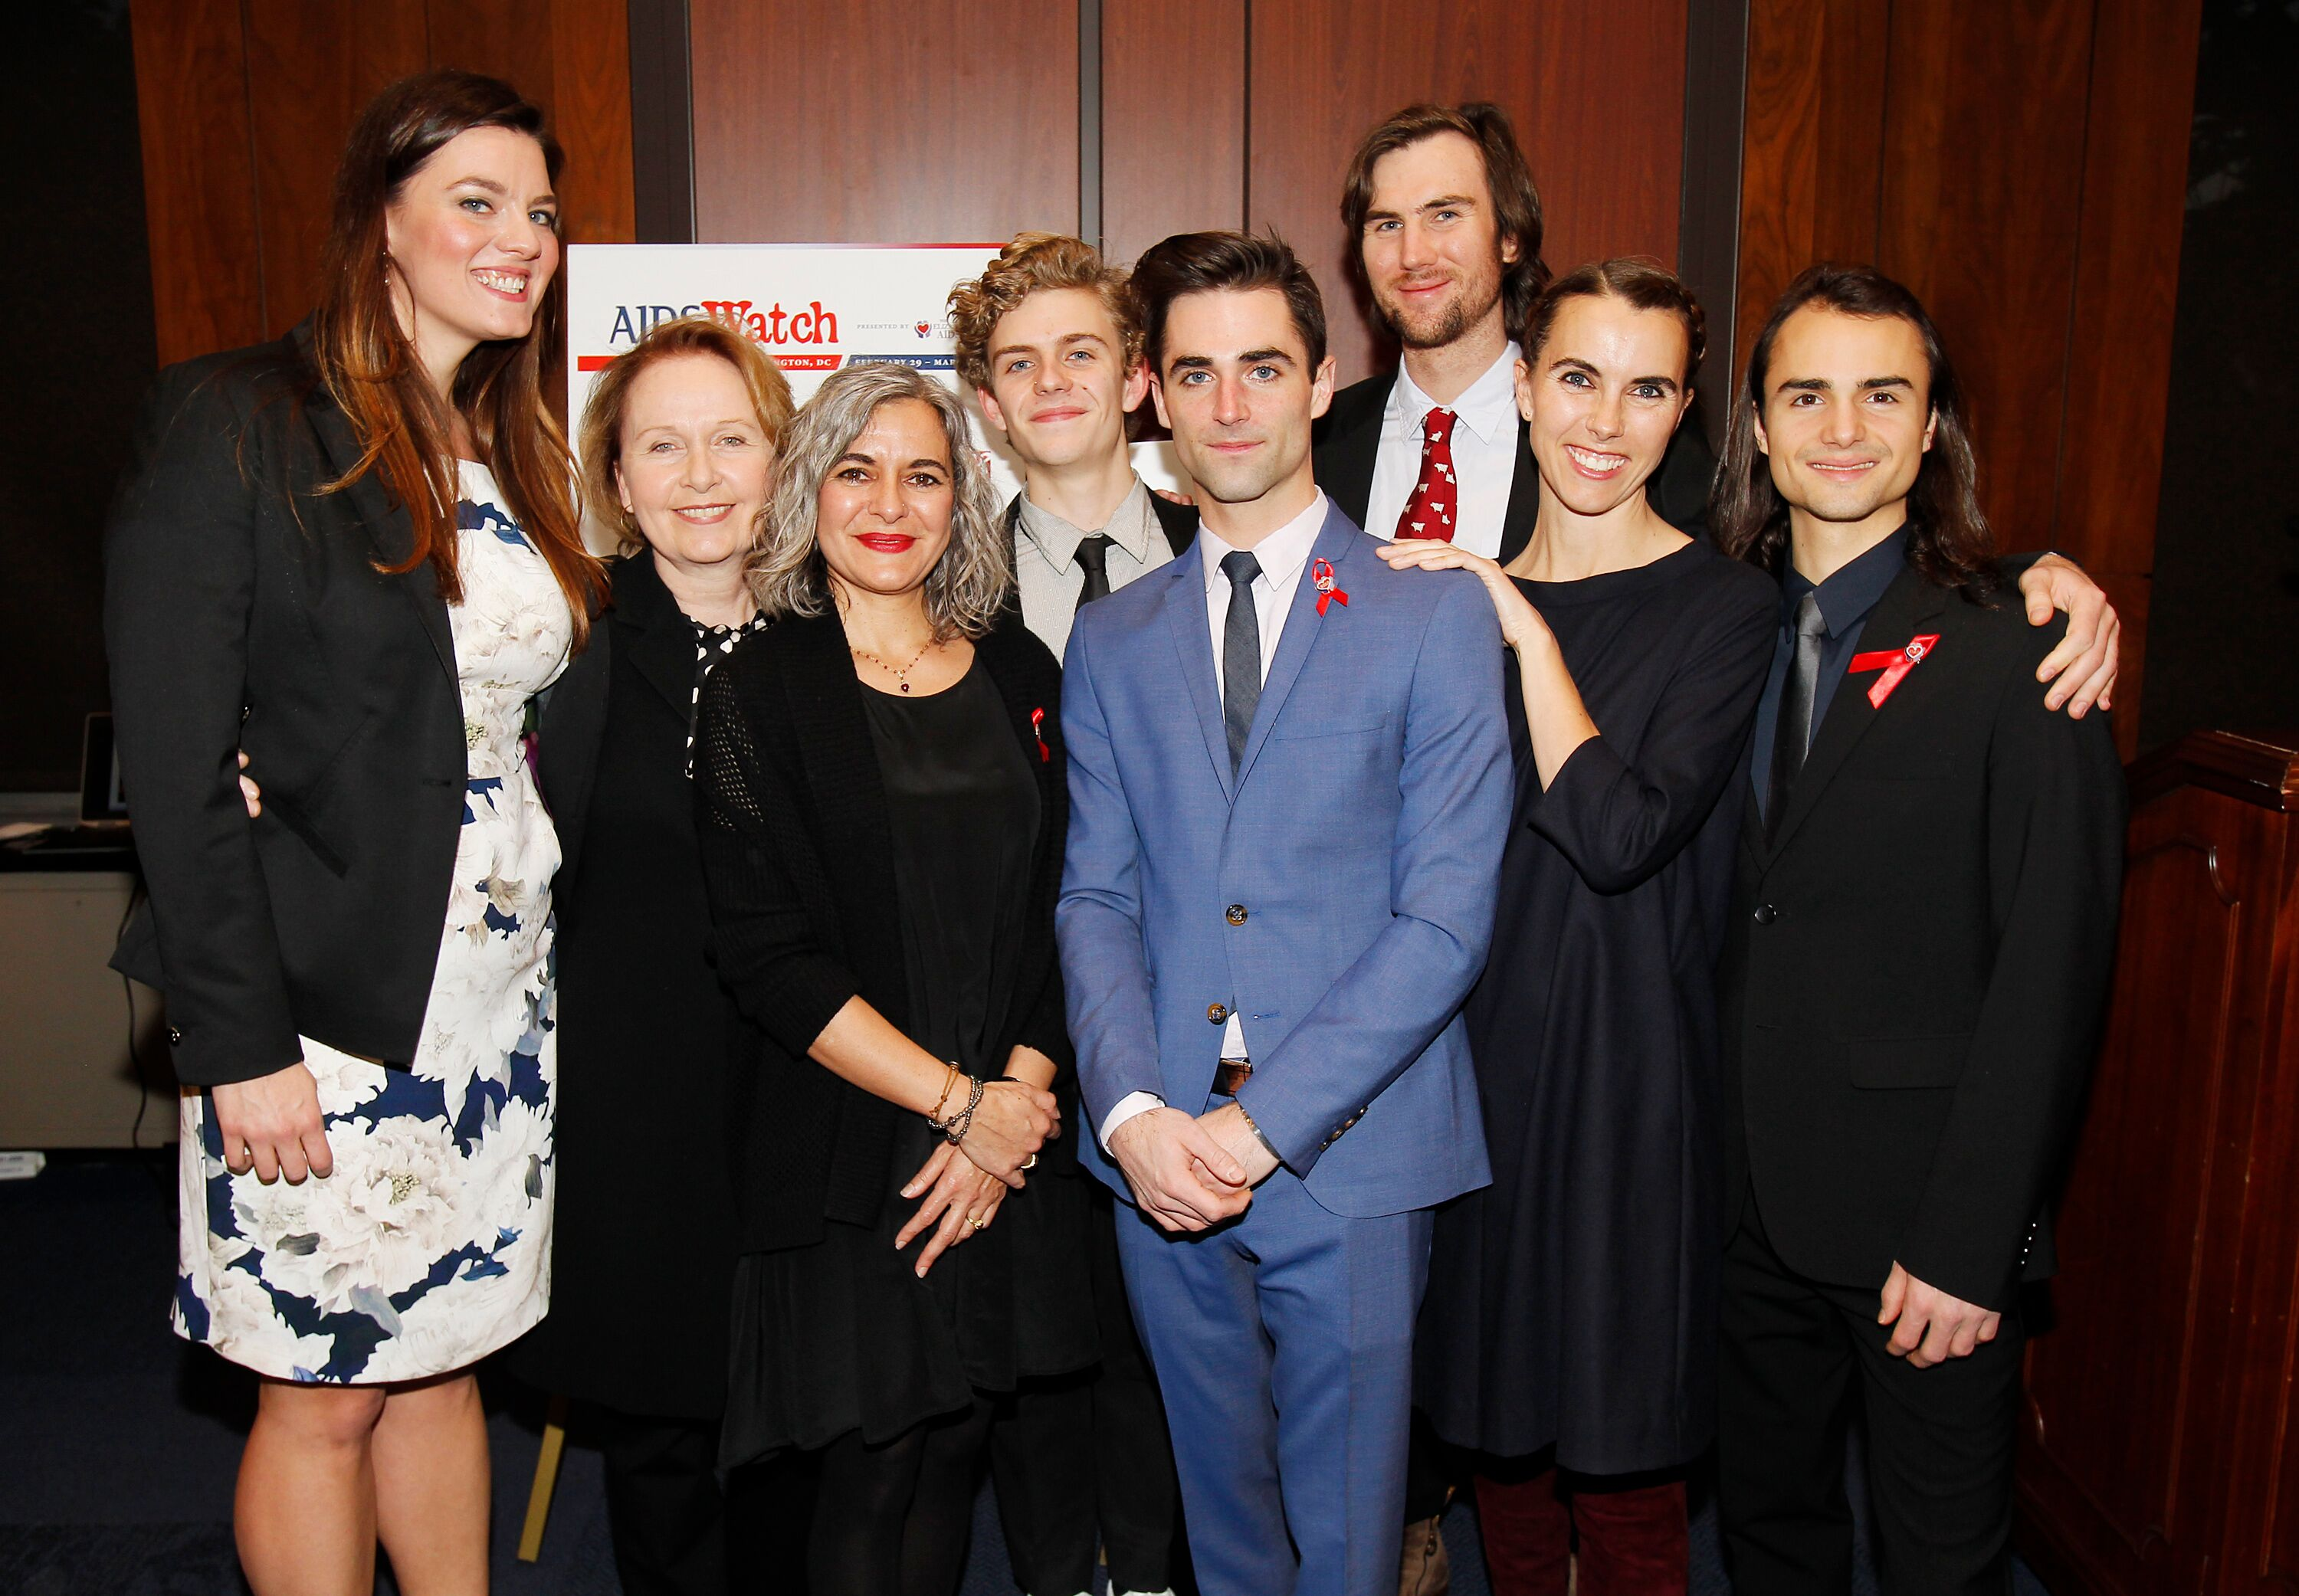 Elizabeth Taylor's family members attend the AIDSWatch 2016 Positive Leadership Award Reception | Getty Images